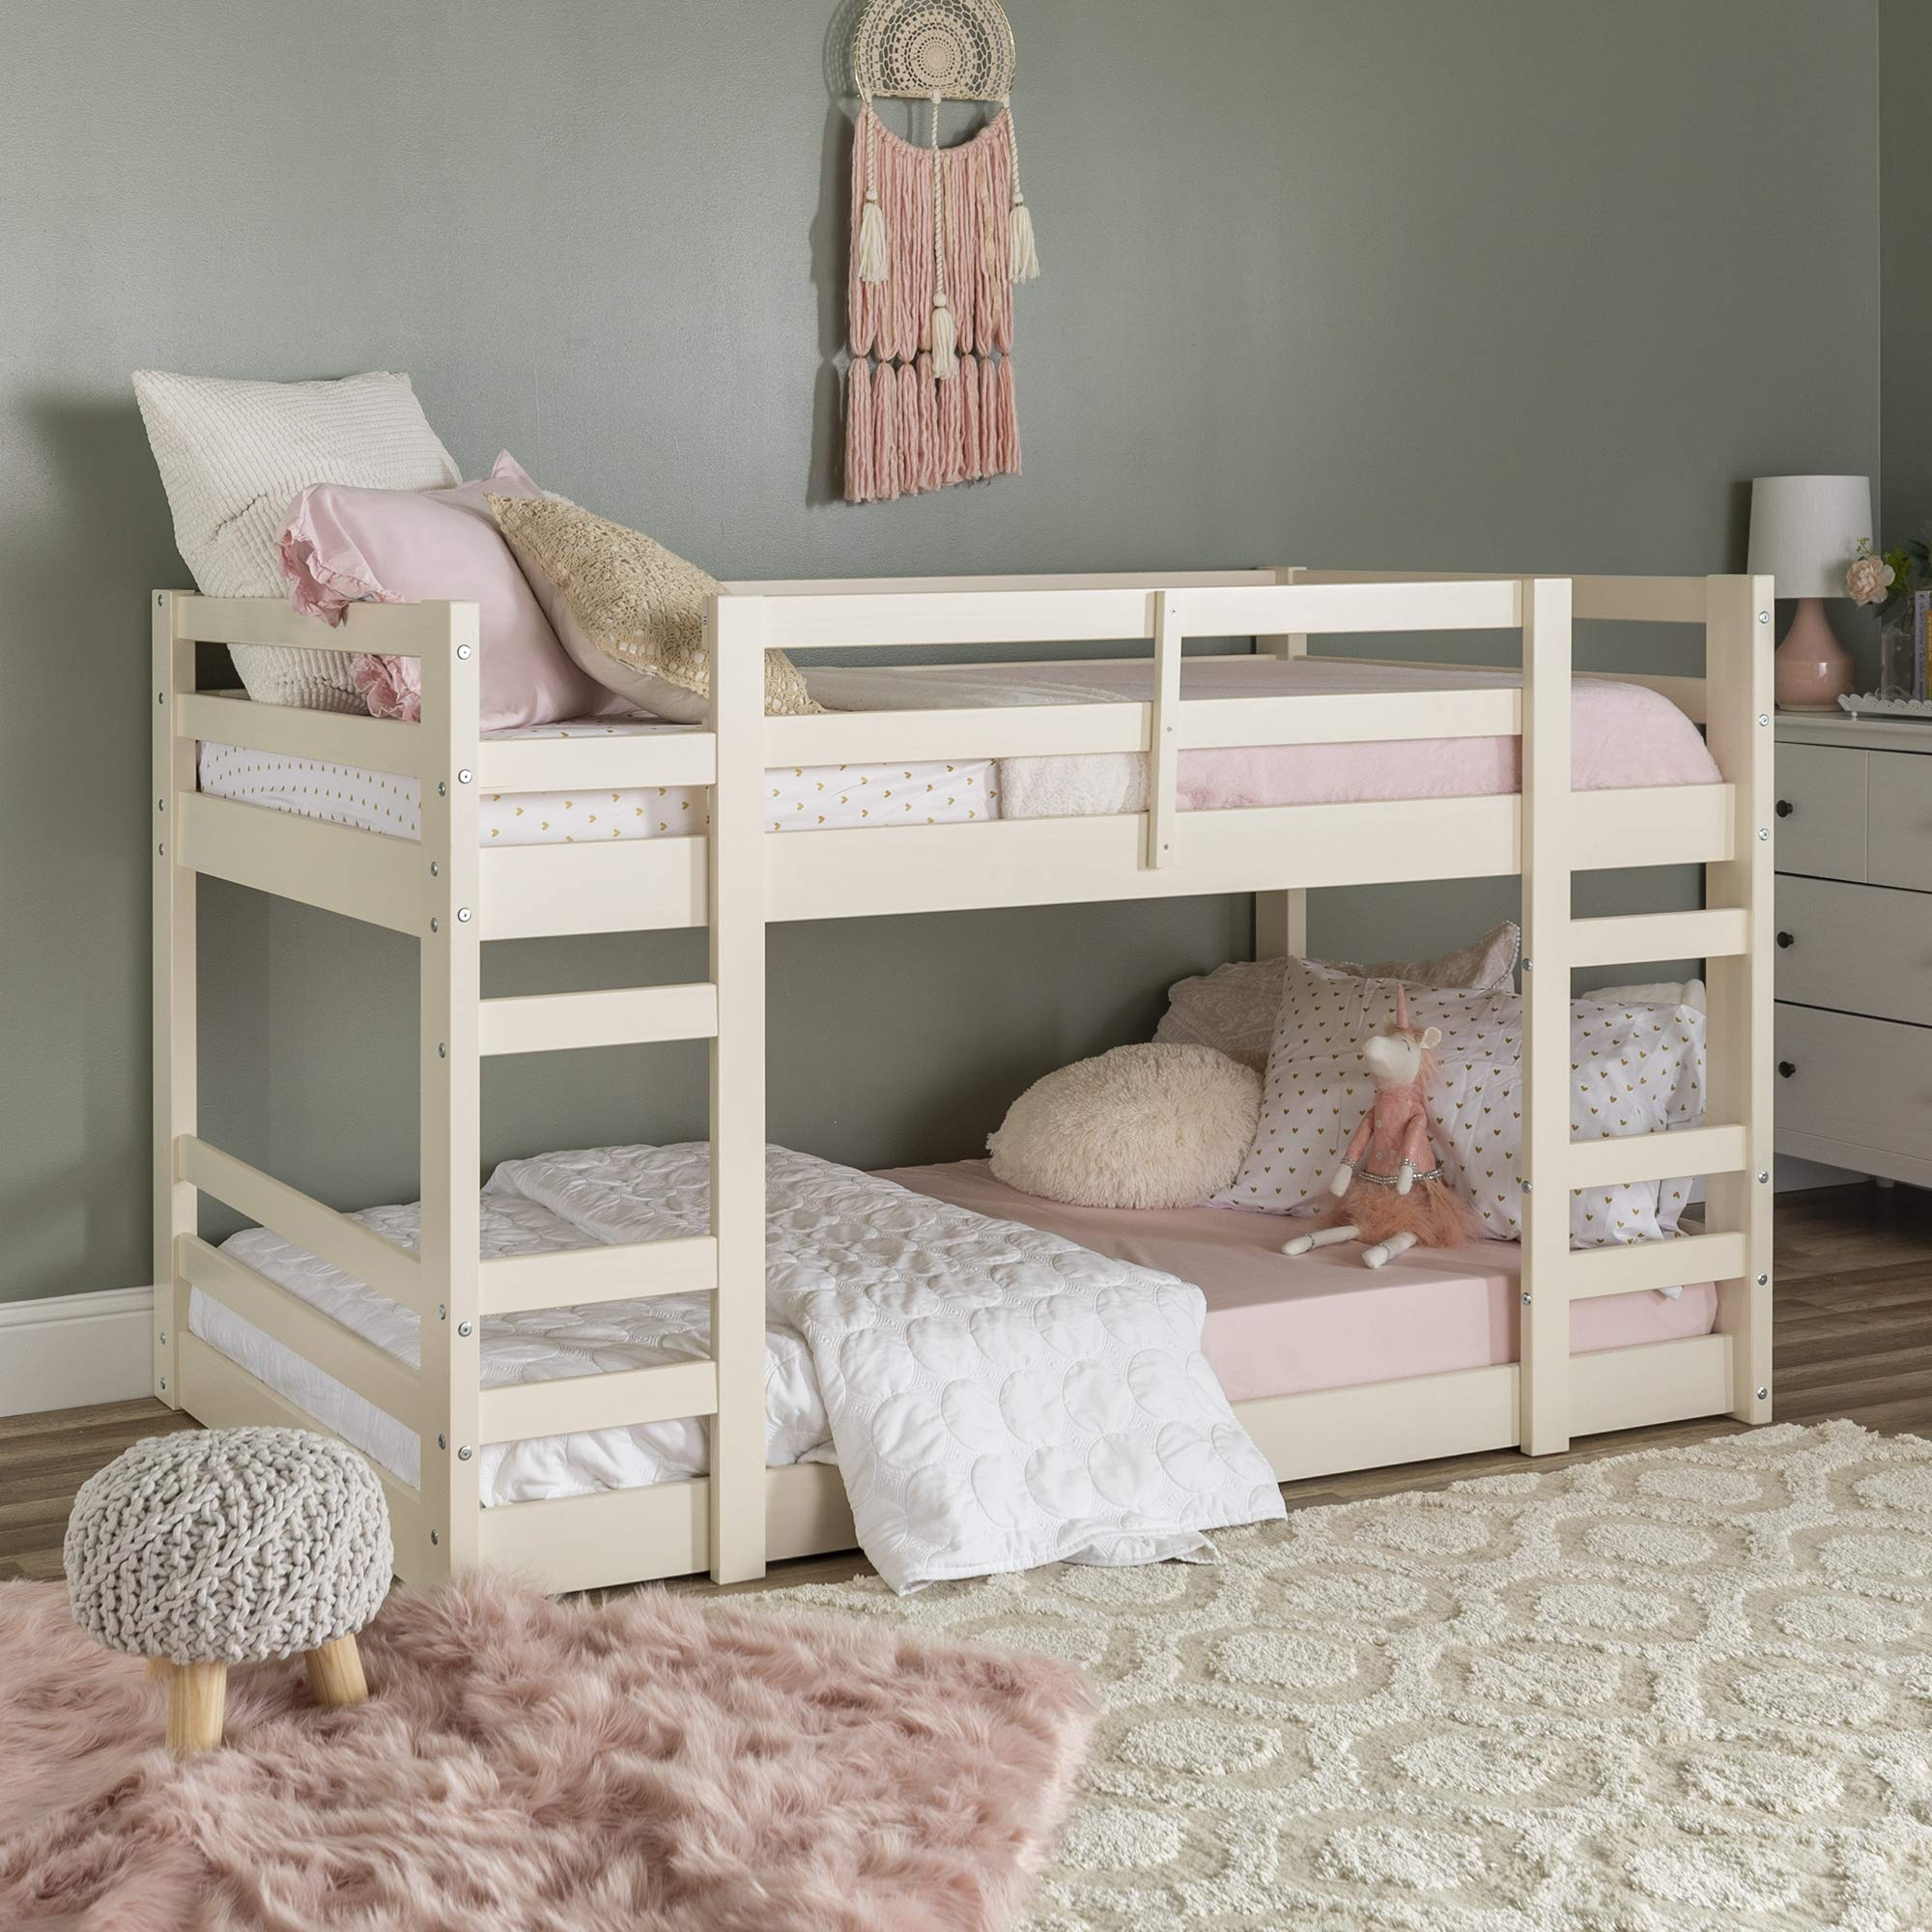 WE Furniture AZWJRTOTWH Bunk Bed, Twin, White by WE Furniture